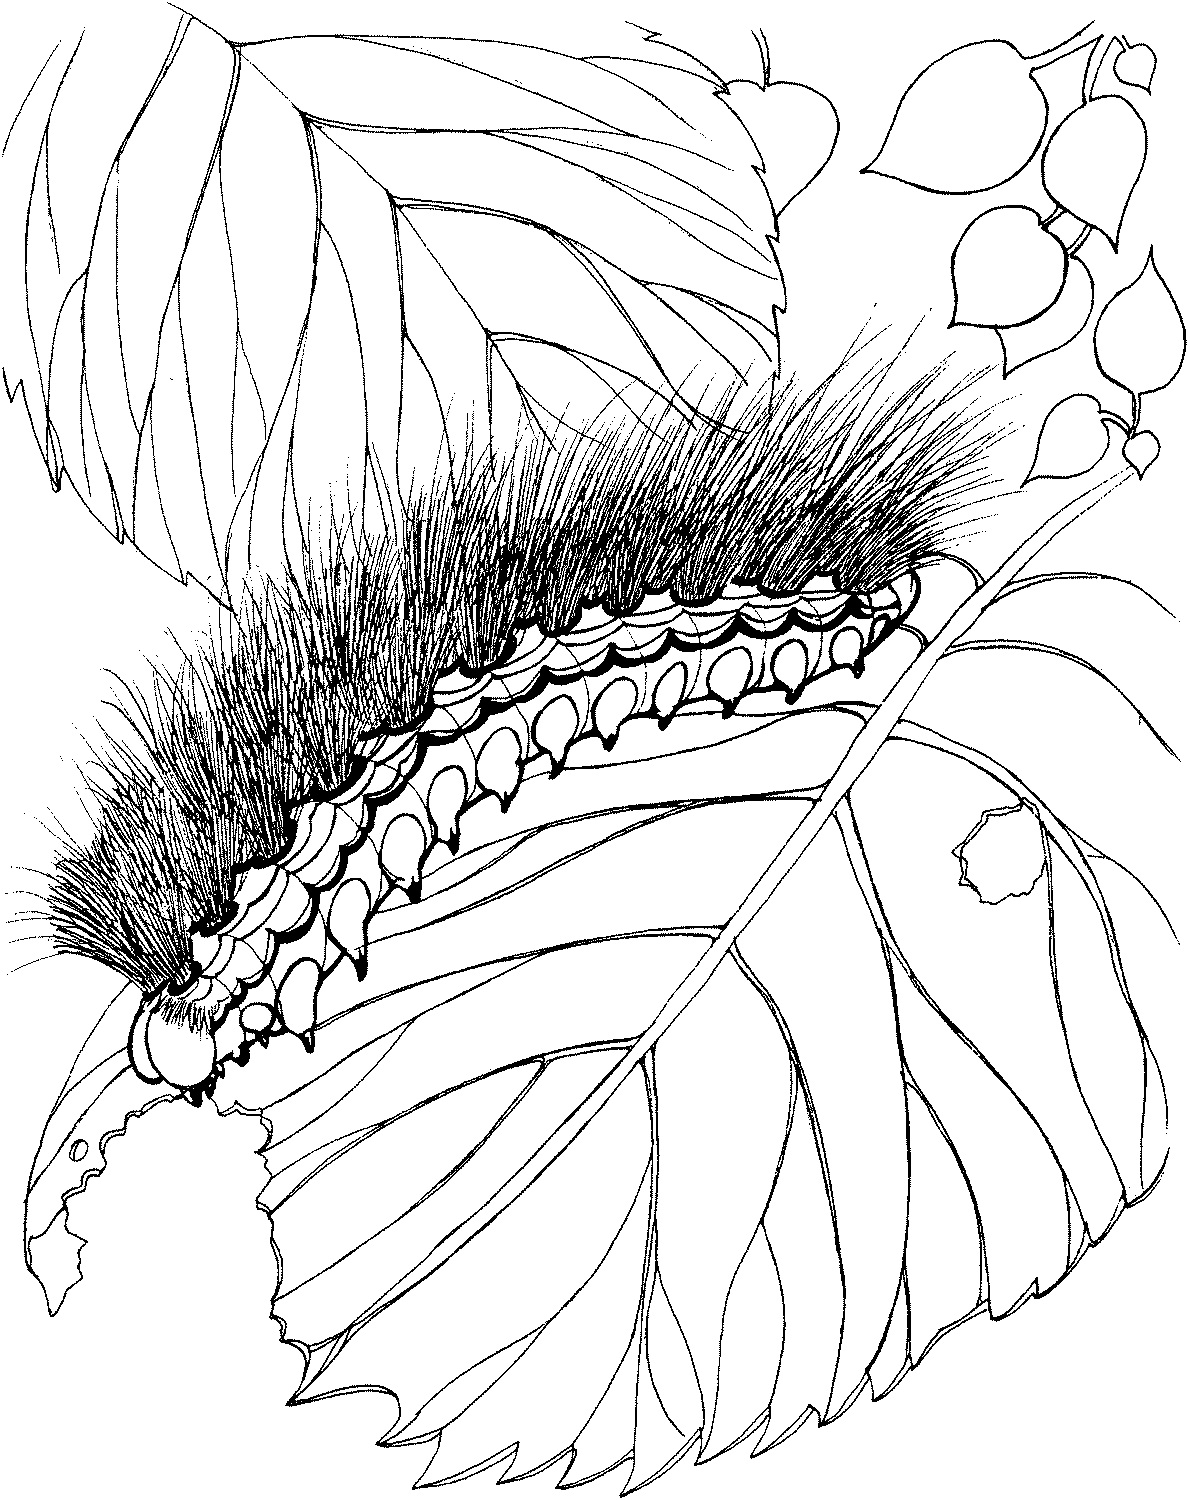 caterpillar coloring pages free printable caterpillar coloring pages for kids coloring caterpillar pages